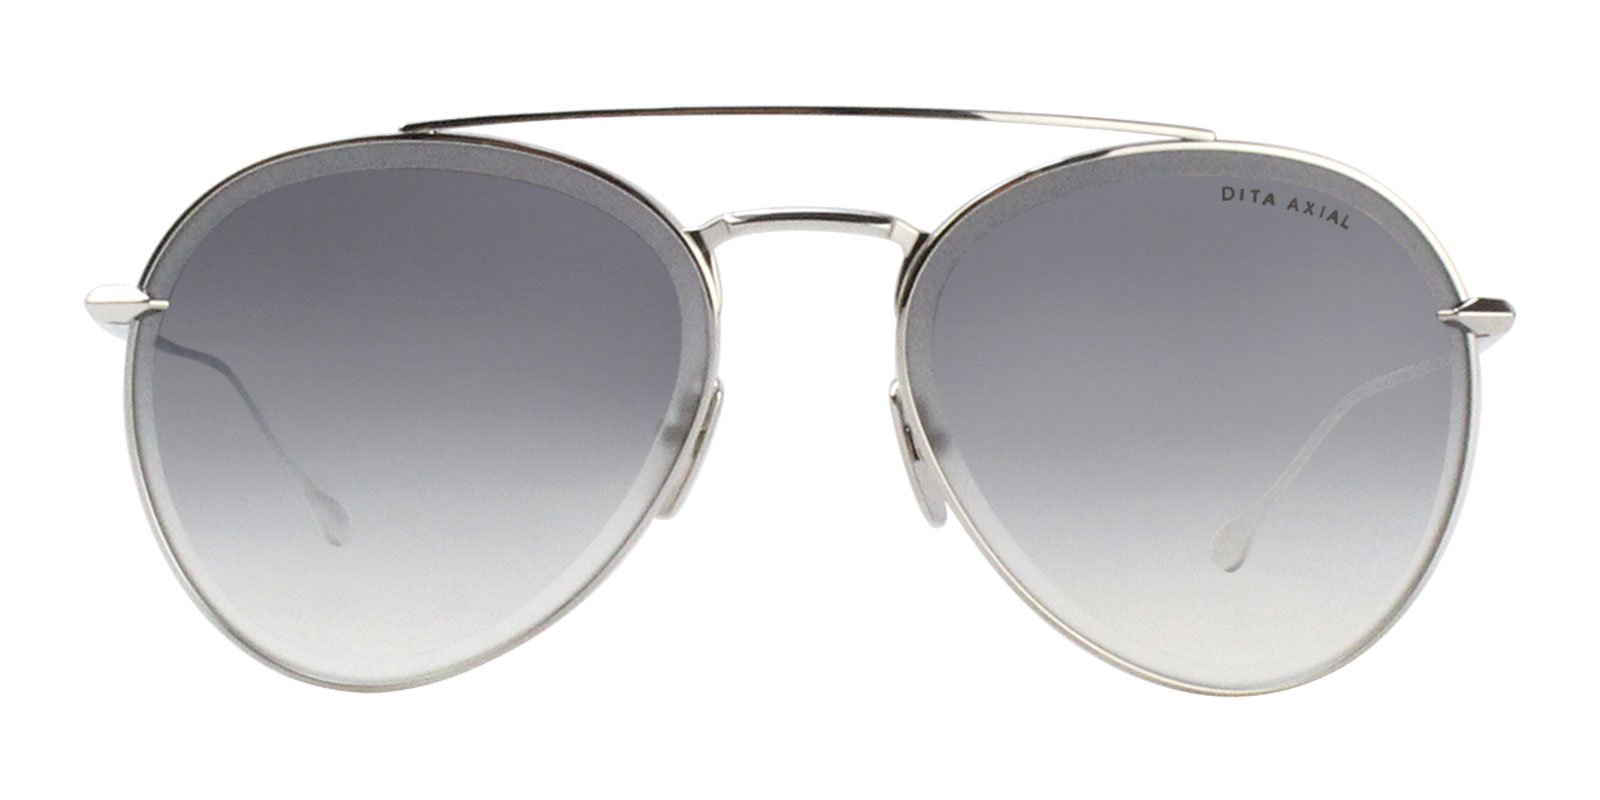 Dita - Axial Silver Aviator Women Sunglasses - 57mm-Sunglasses-Designer Eyes